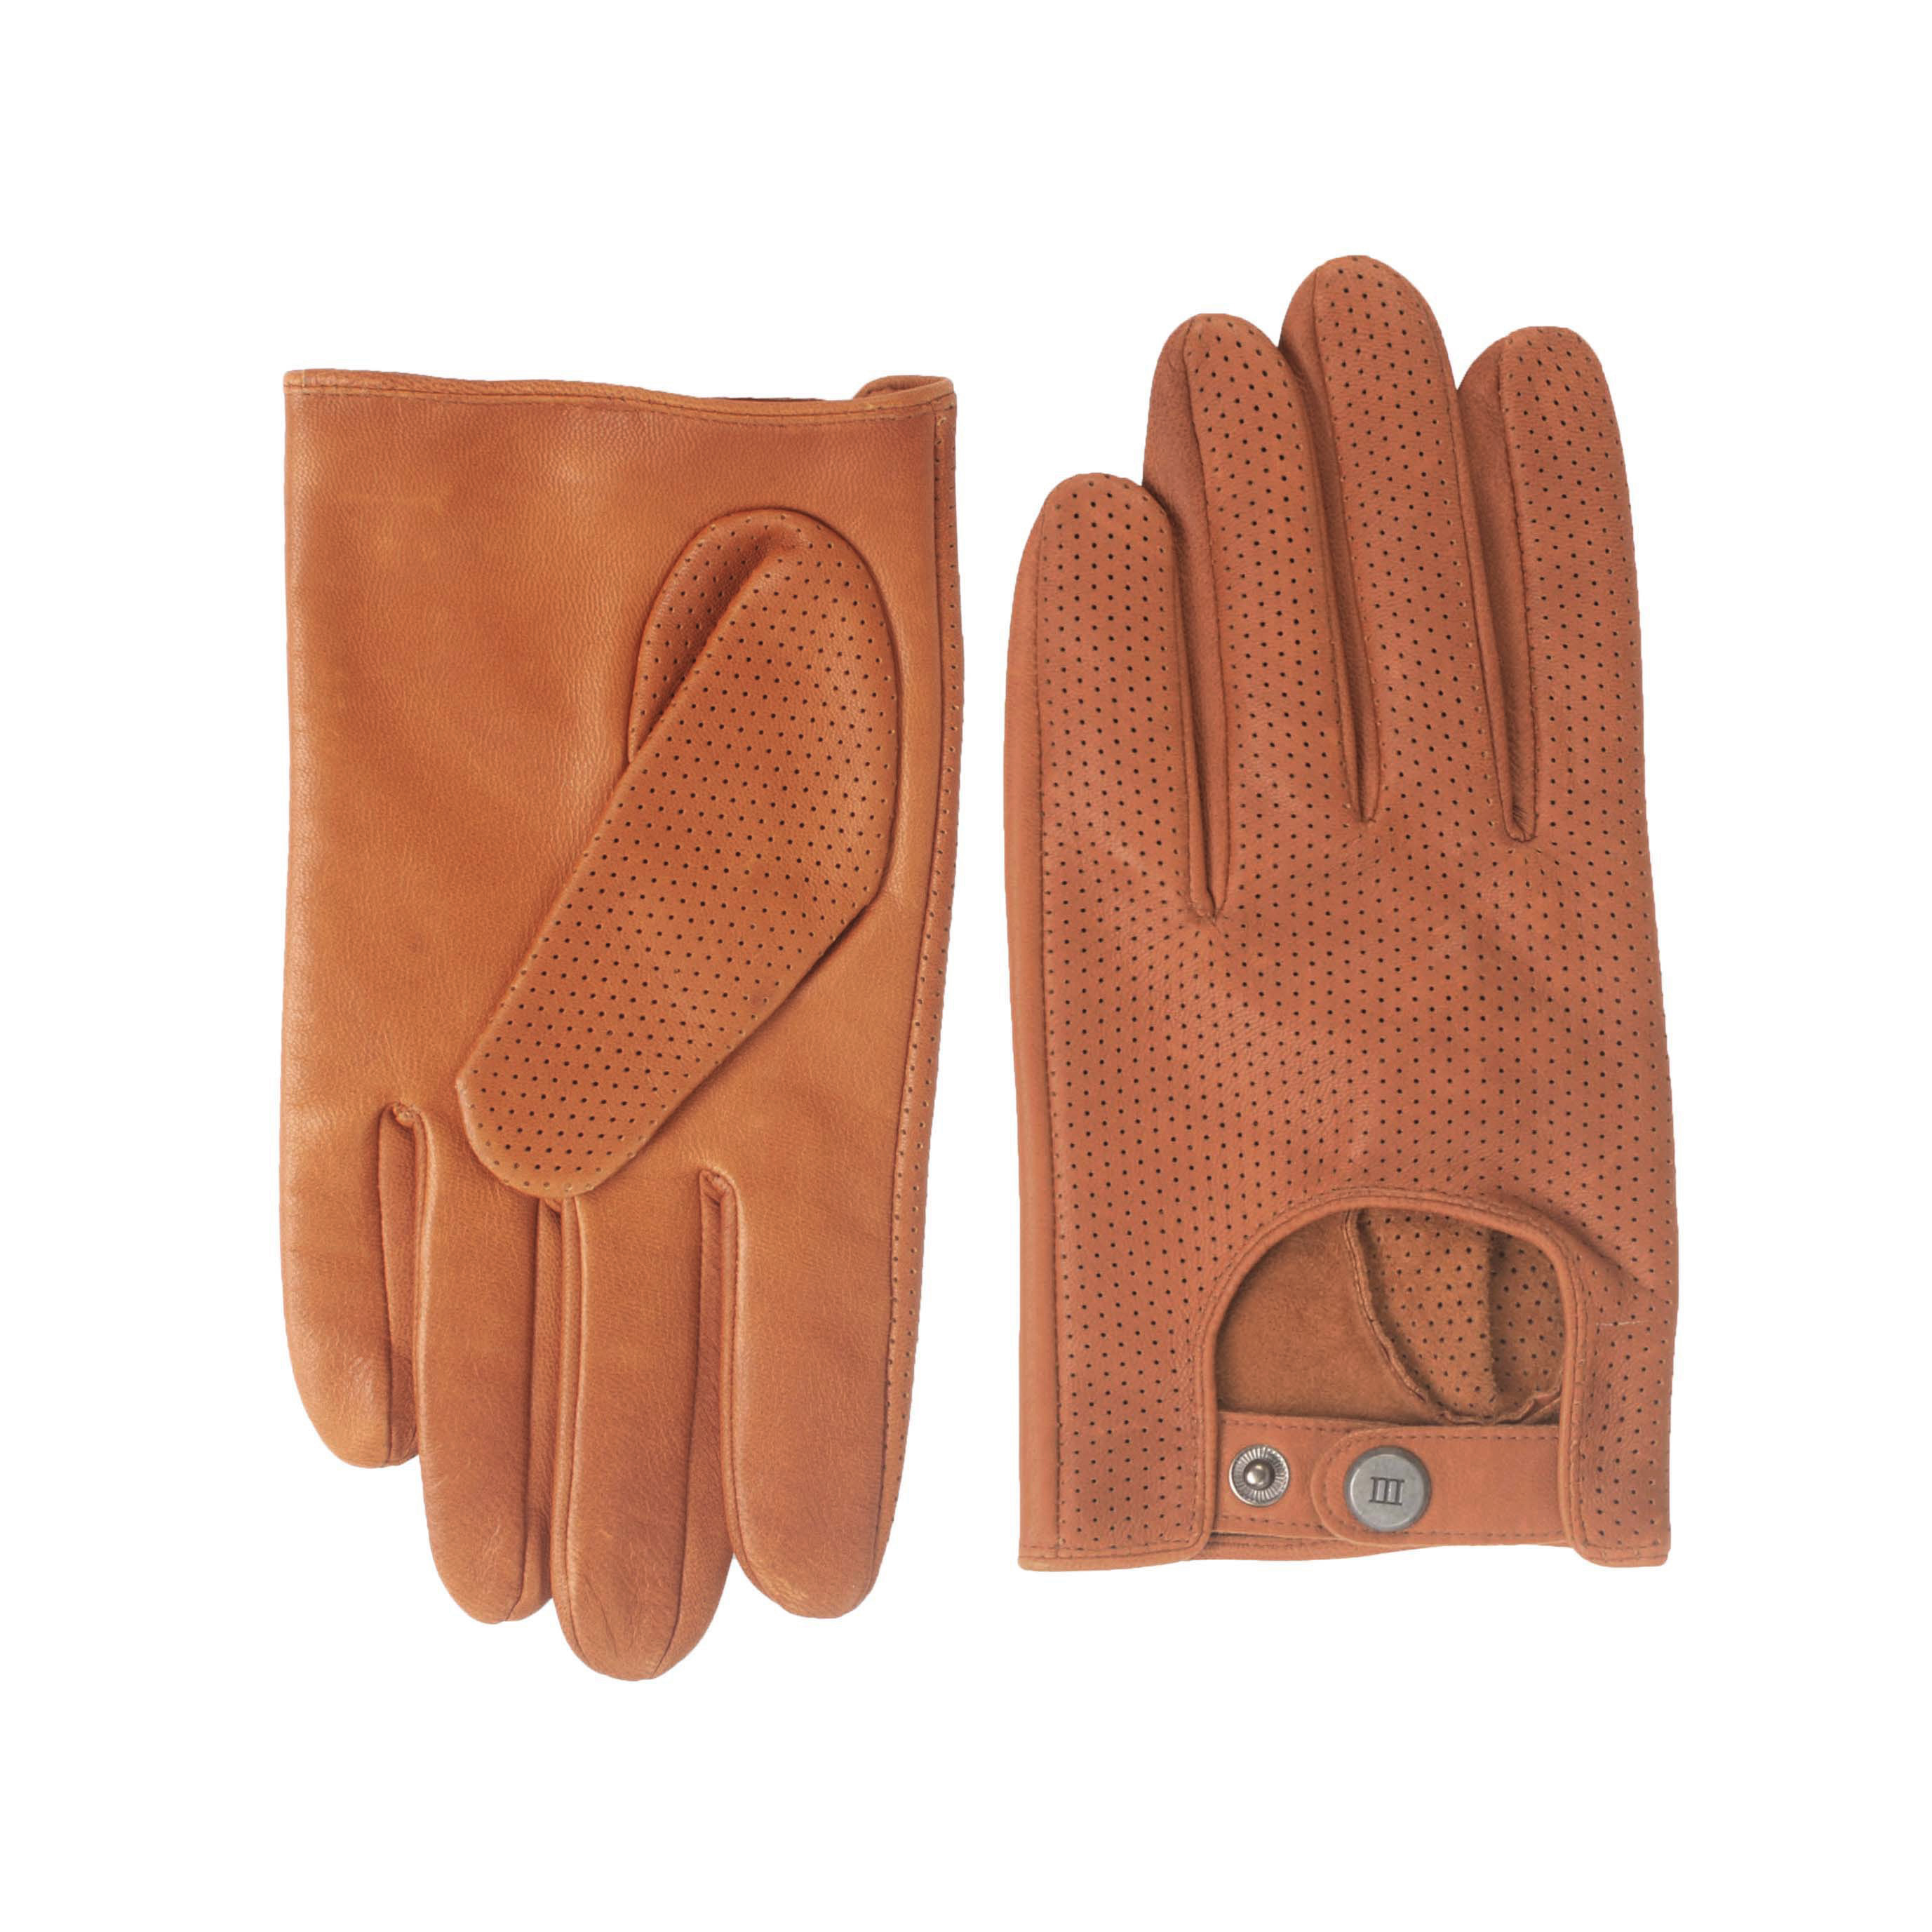 Jannick | Gloves leather for car